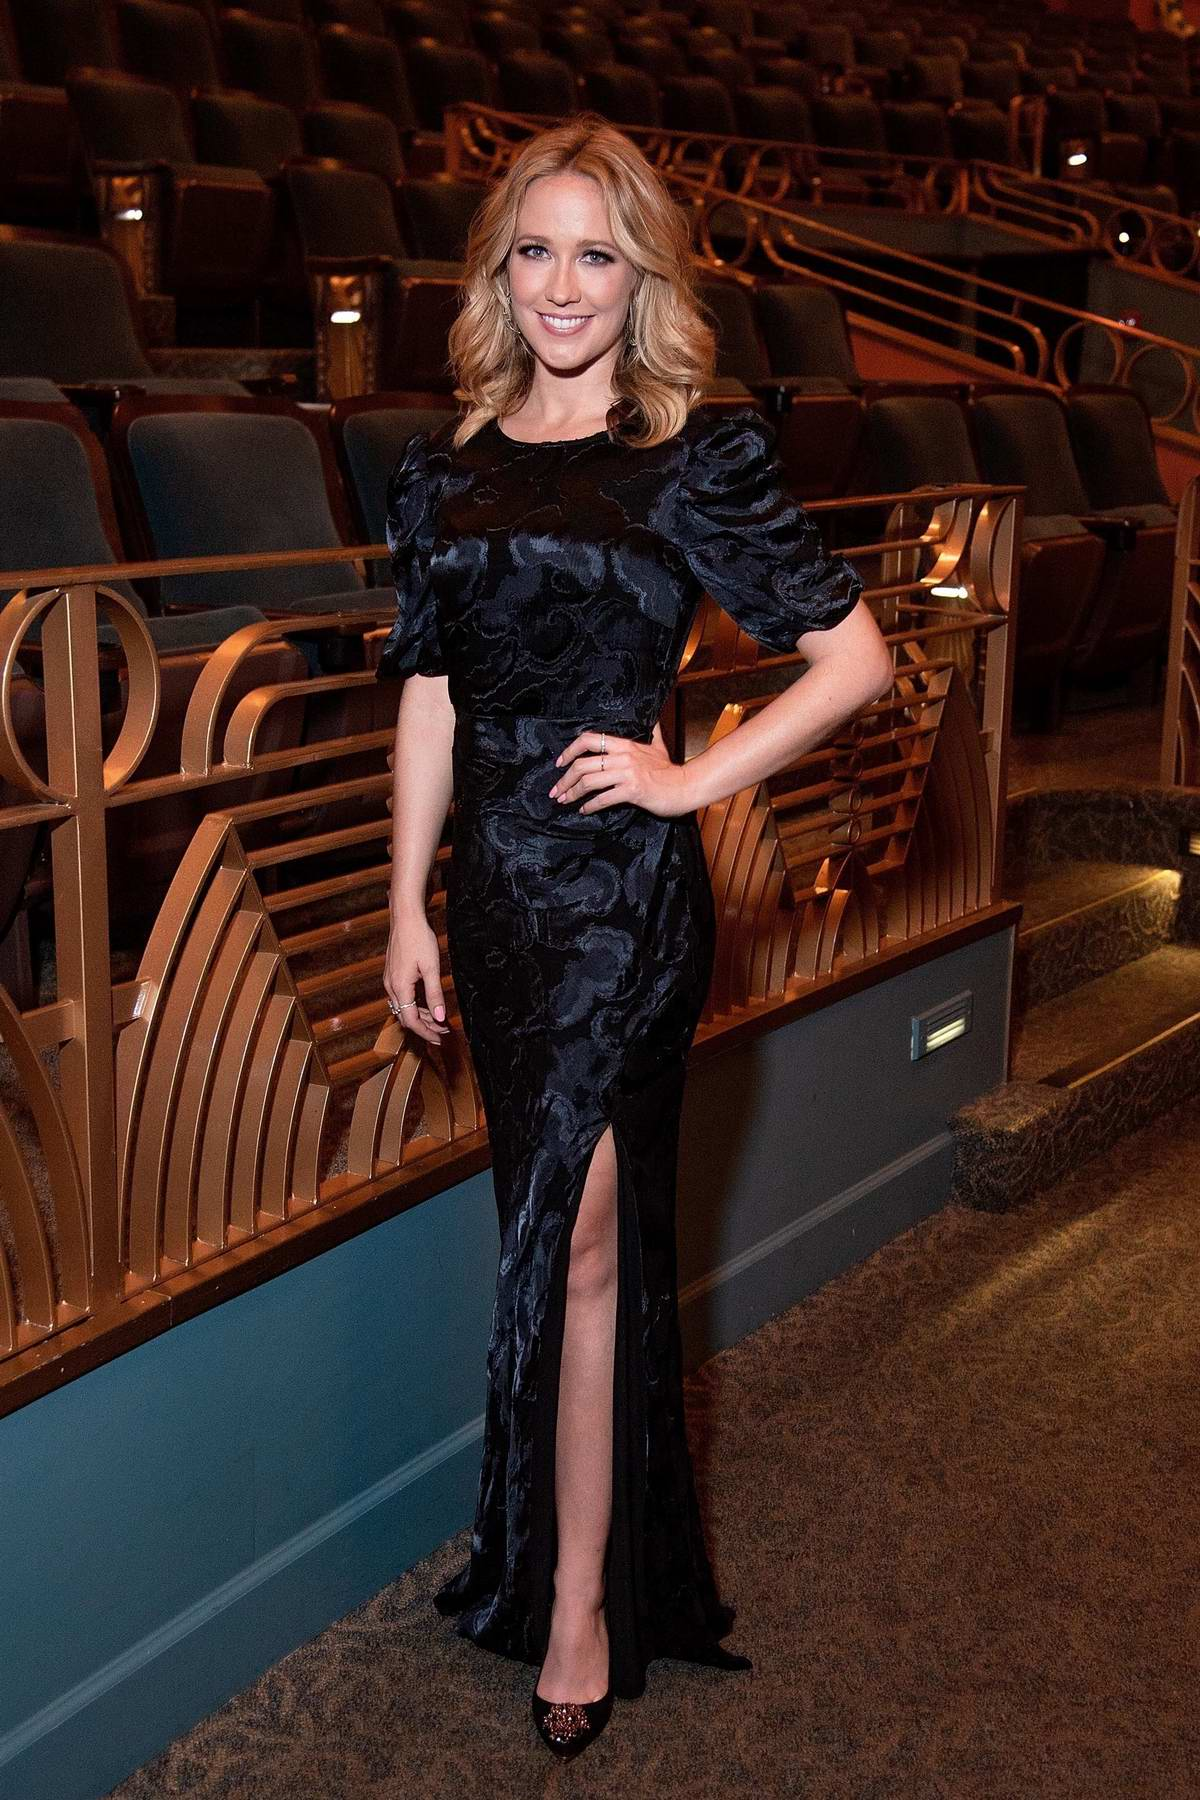 Anna Camp attends a special screening of 'Here Awhile' during the 2019 Napa Film Festival at the Uptown Theatre in Napa, California